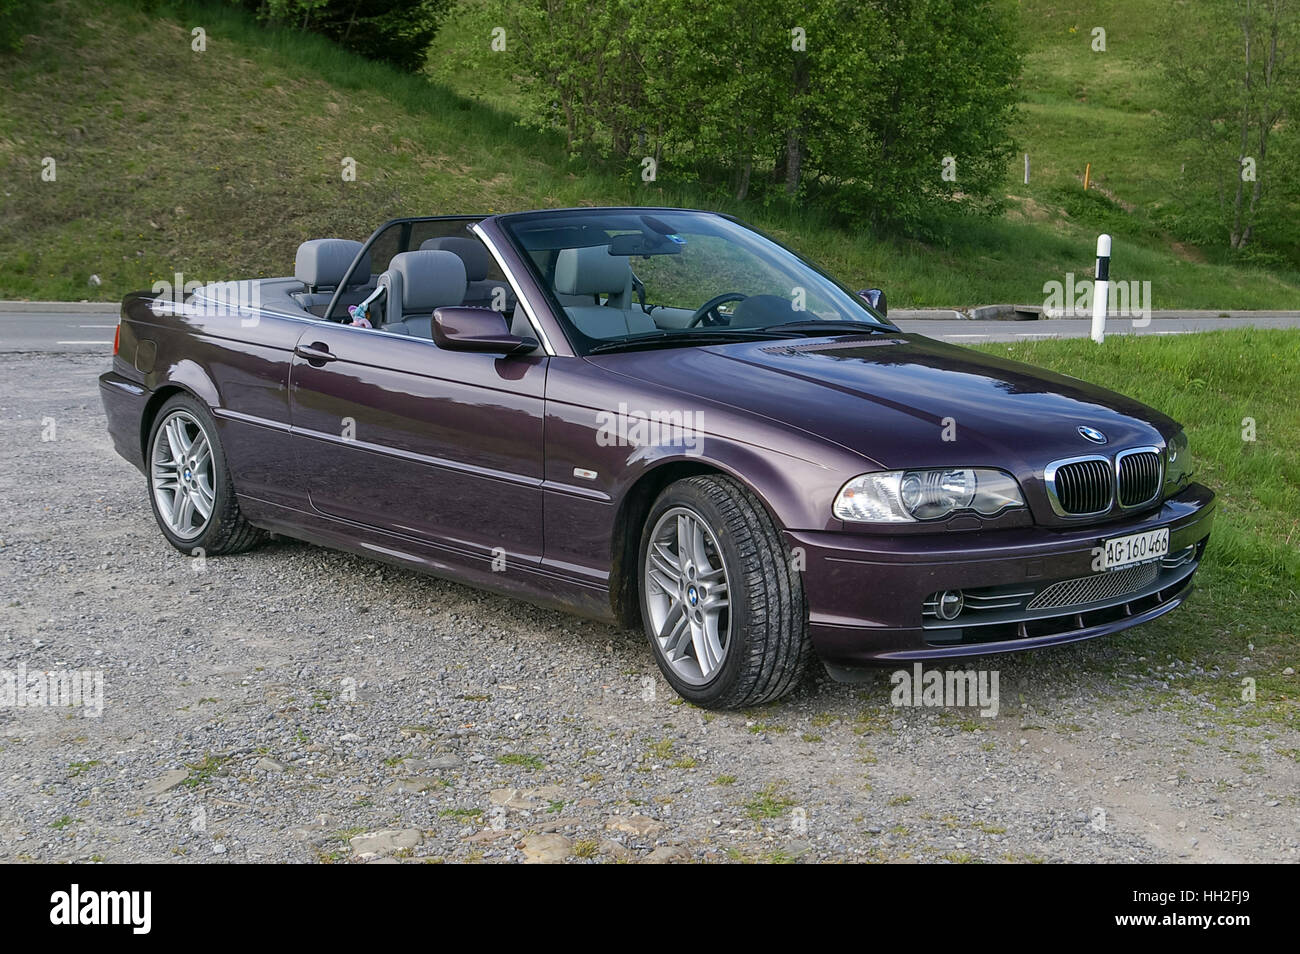 bmw 3 series convertible model e46 with retracted roof. Black Bedroom Furniture Sets. Home Design Ideas